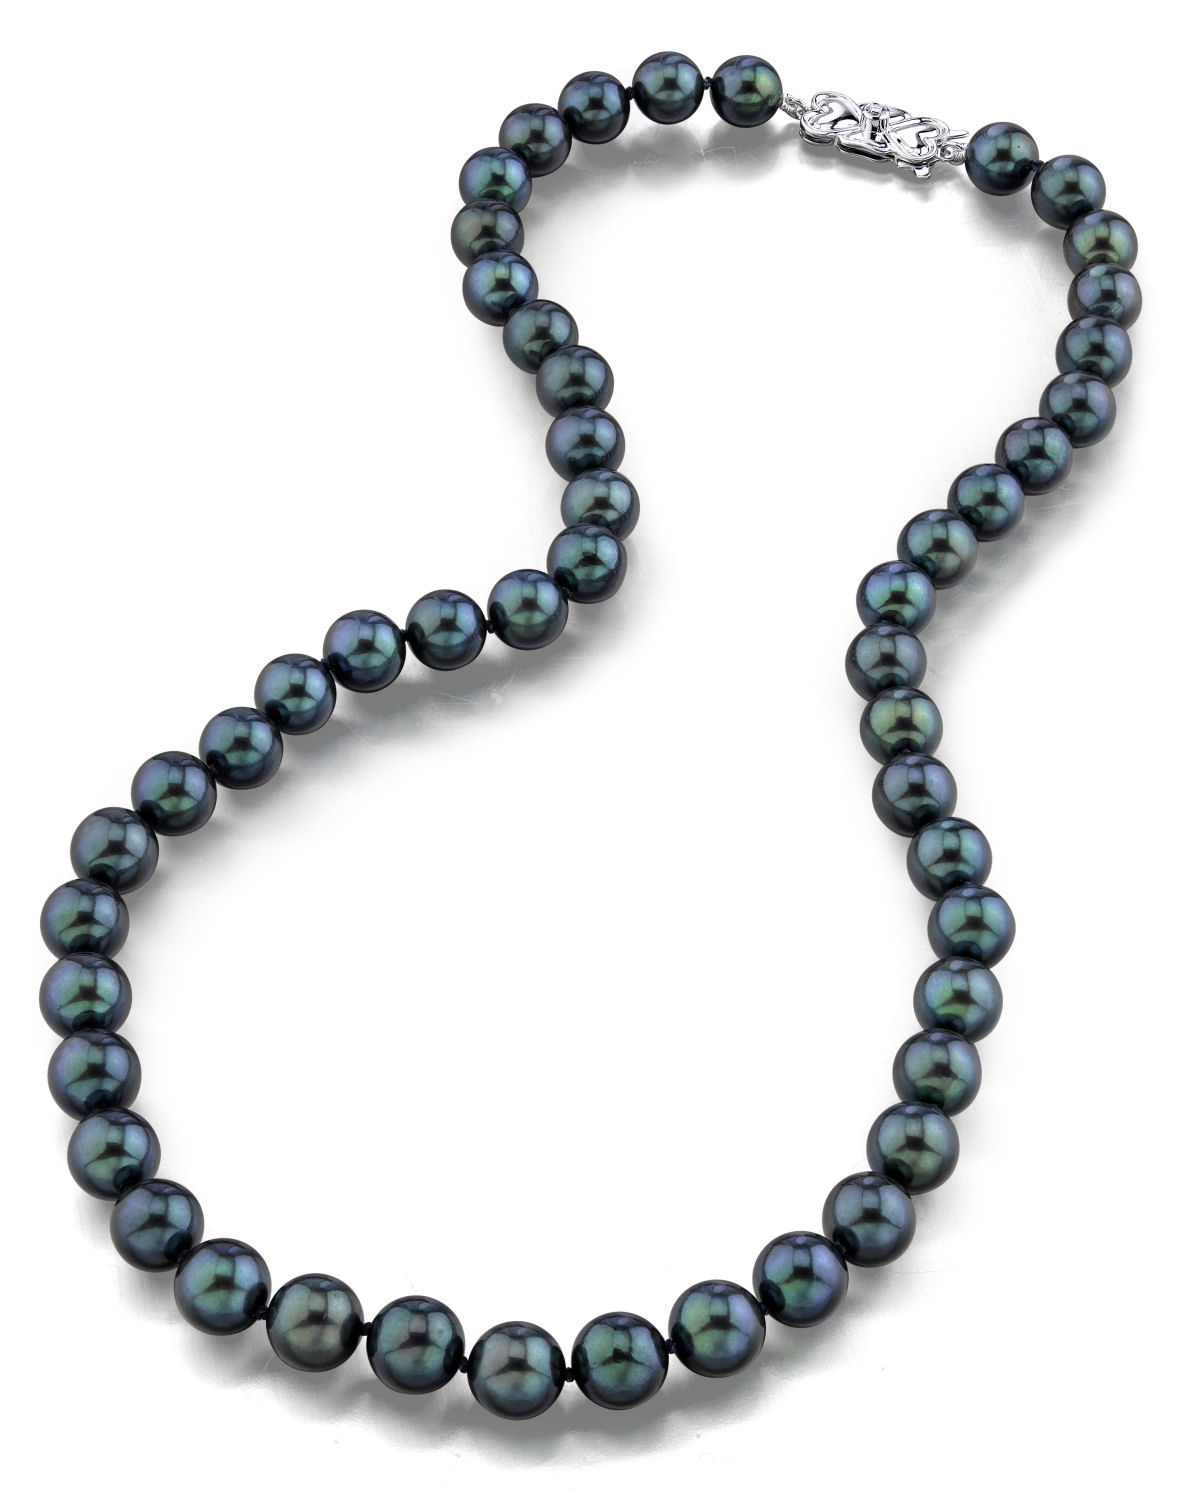 8.0-8.5mm Japanese Akoya Black Pearl Necklace- AA+ Quality